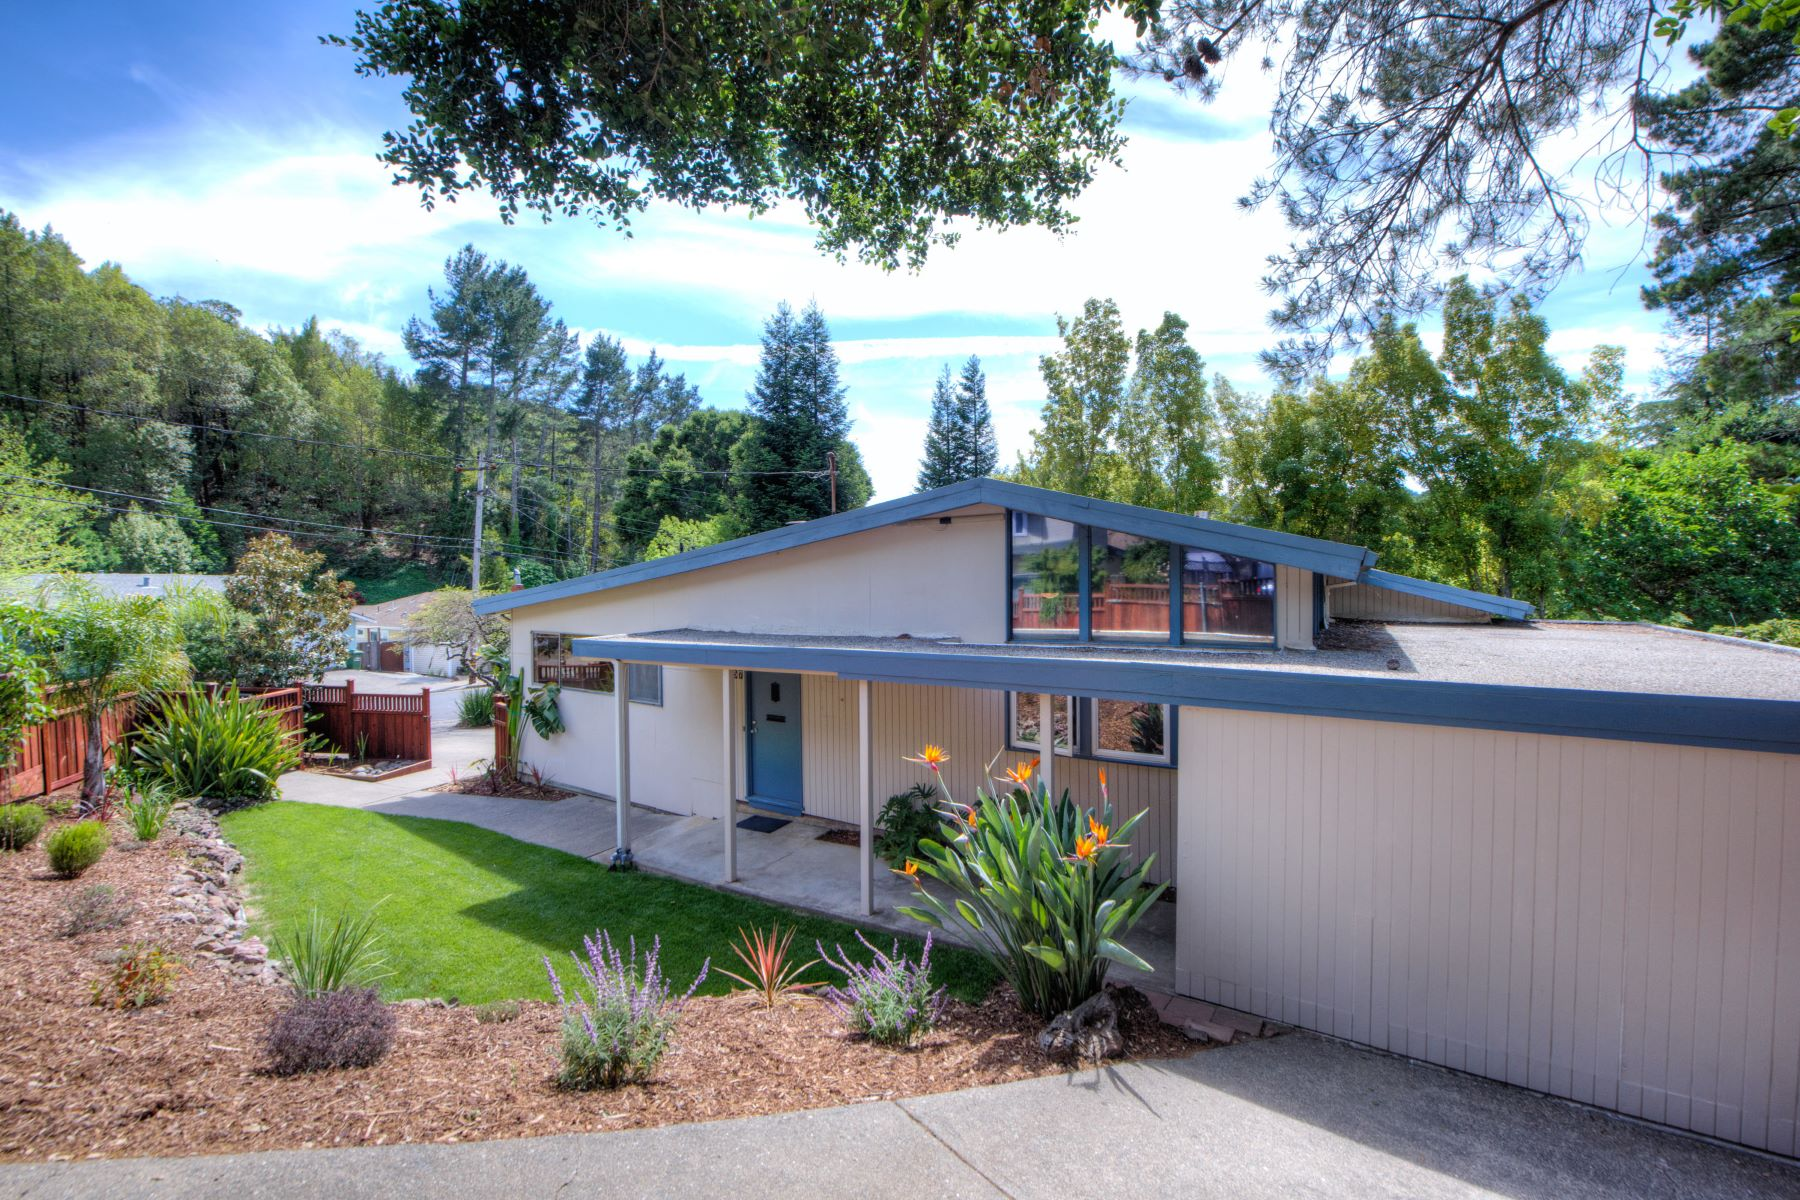 Single Family Home for Sale at Classic Mid Century Modern 57 San Gabriel Drive Fairfax, California 94930 United States